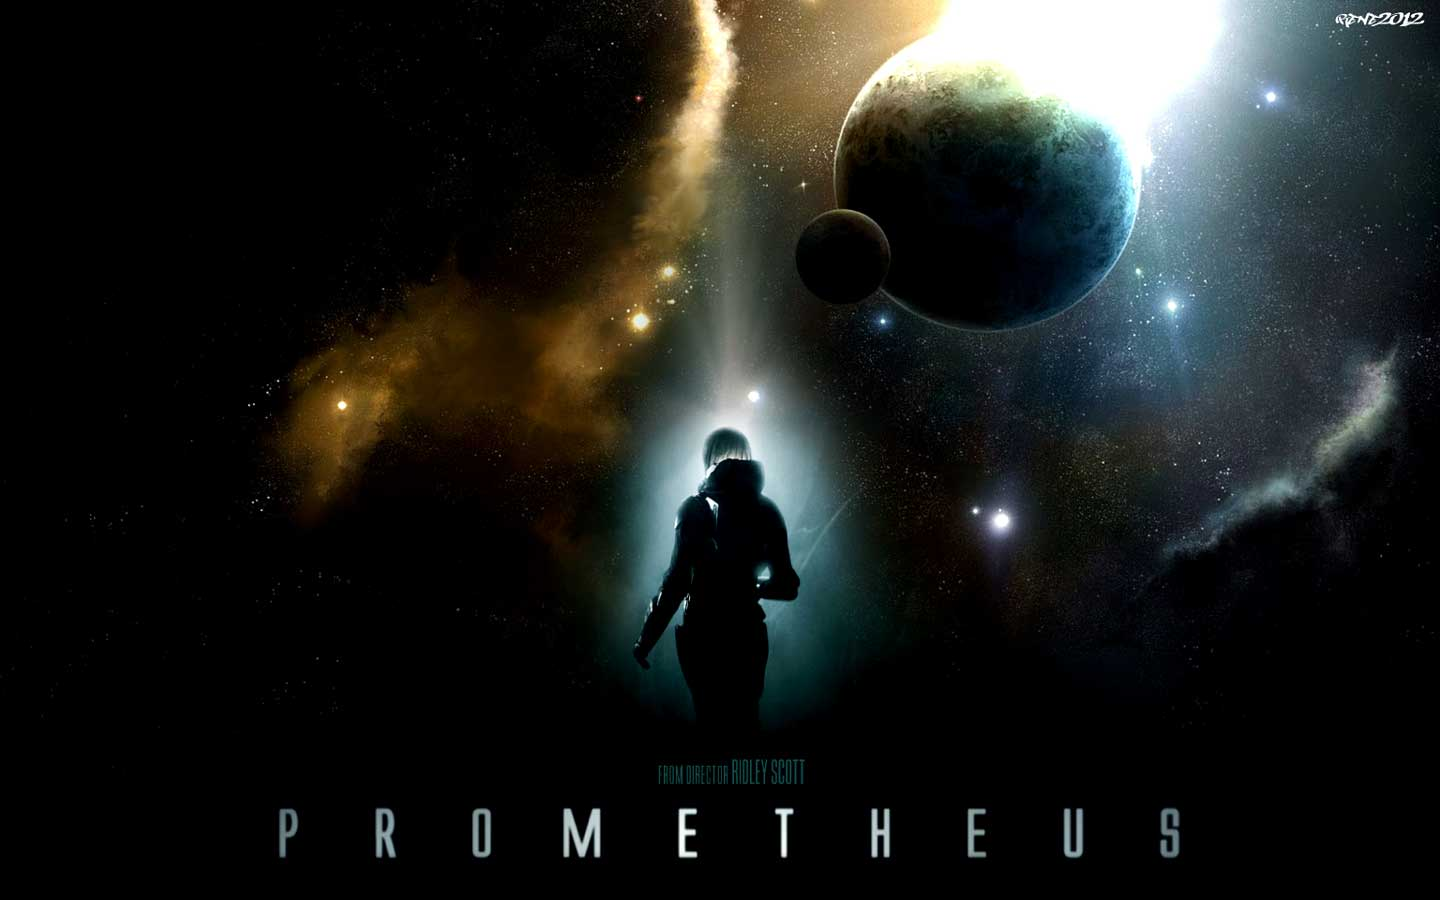 Prometheus wallpaper prometheus wallpaper prometheus wallpaper